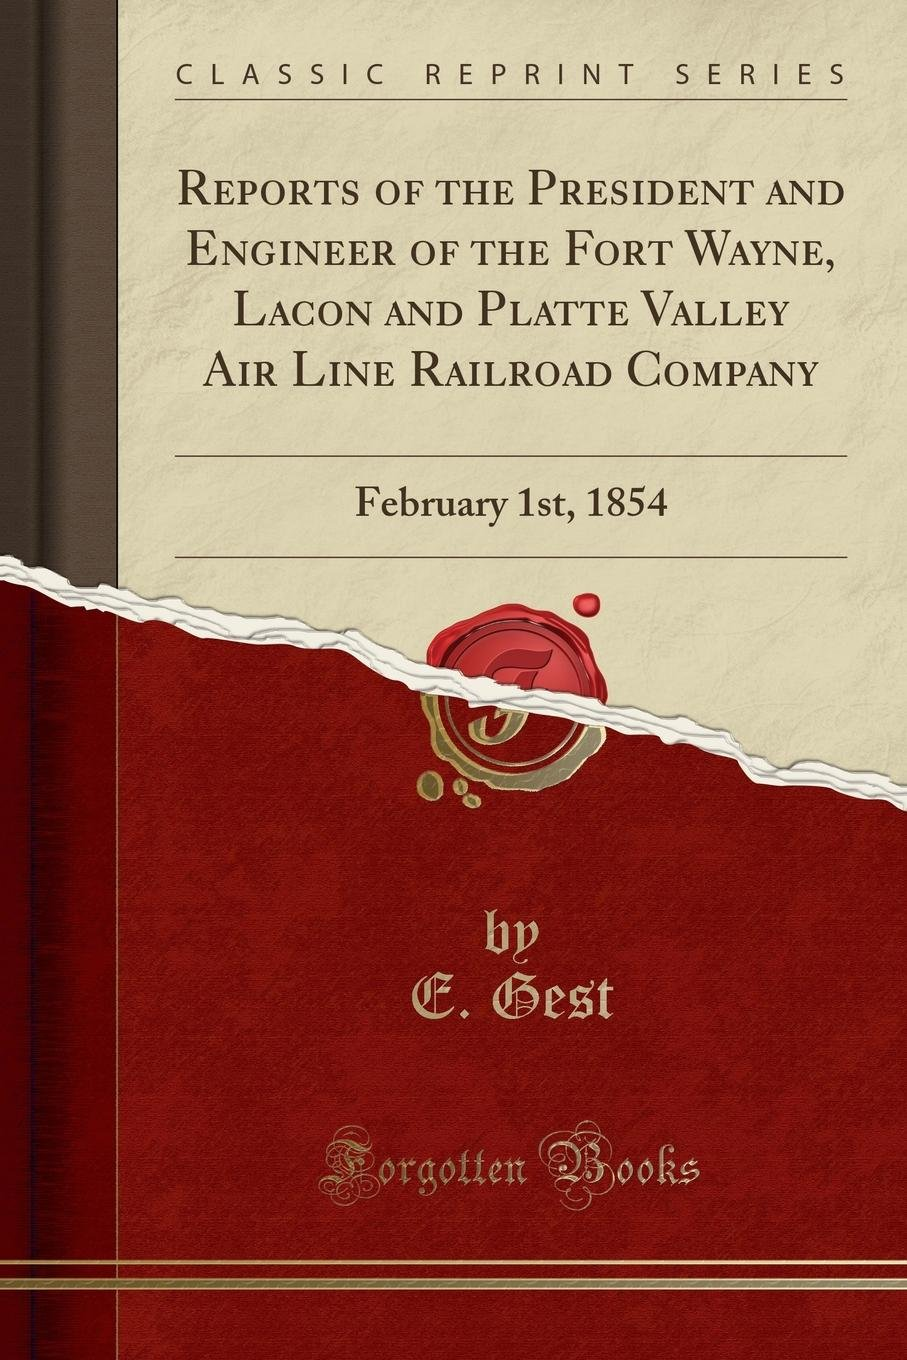 Read Online Reports of the President and Engineer of the Fort Wayne, Lacon and Platte Valley Air Line Railroad Company: February 1st, 1854 (Classic Reprint) PDF